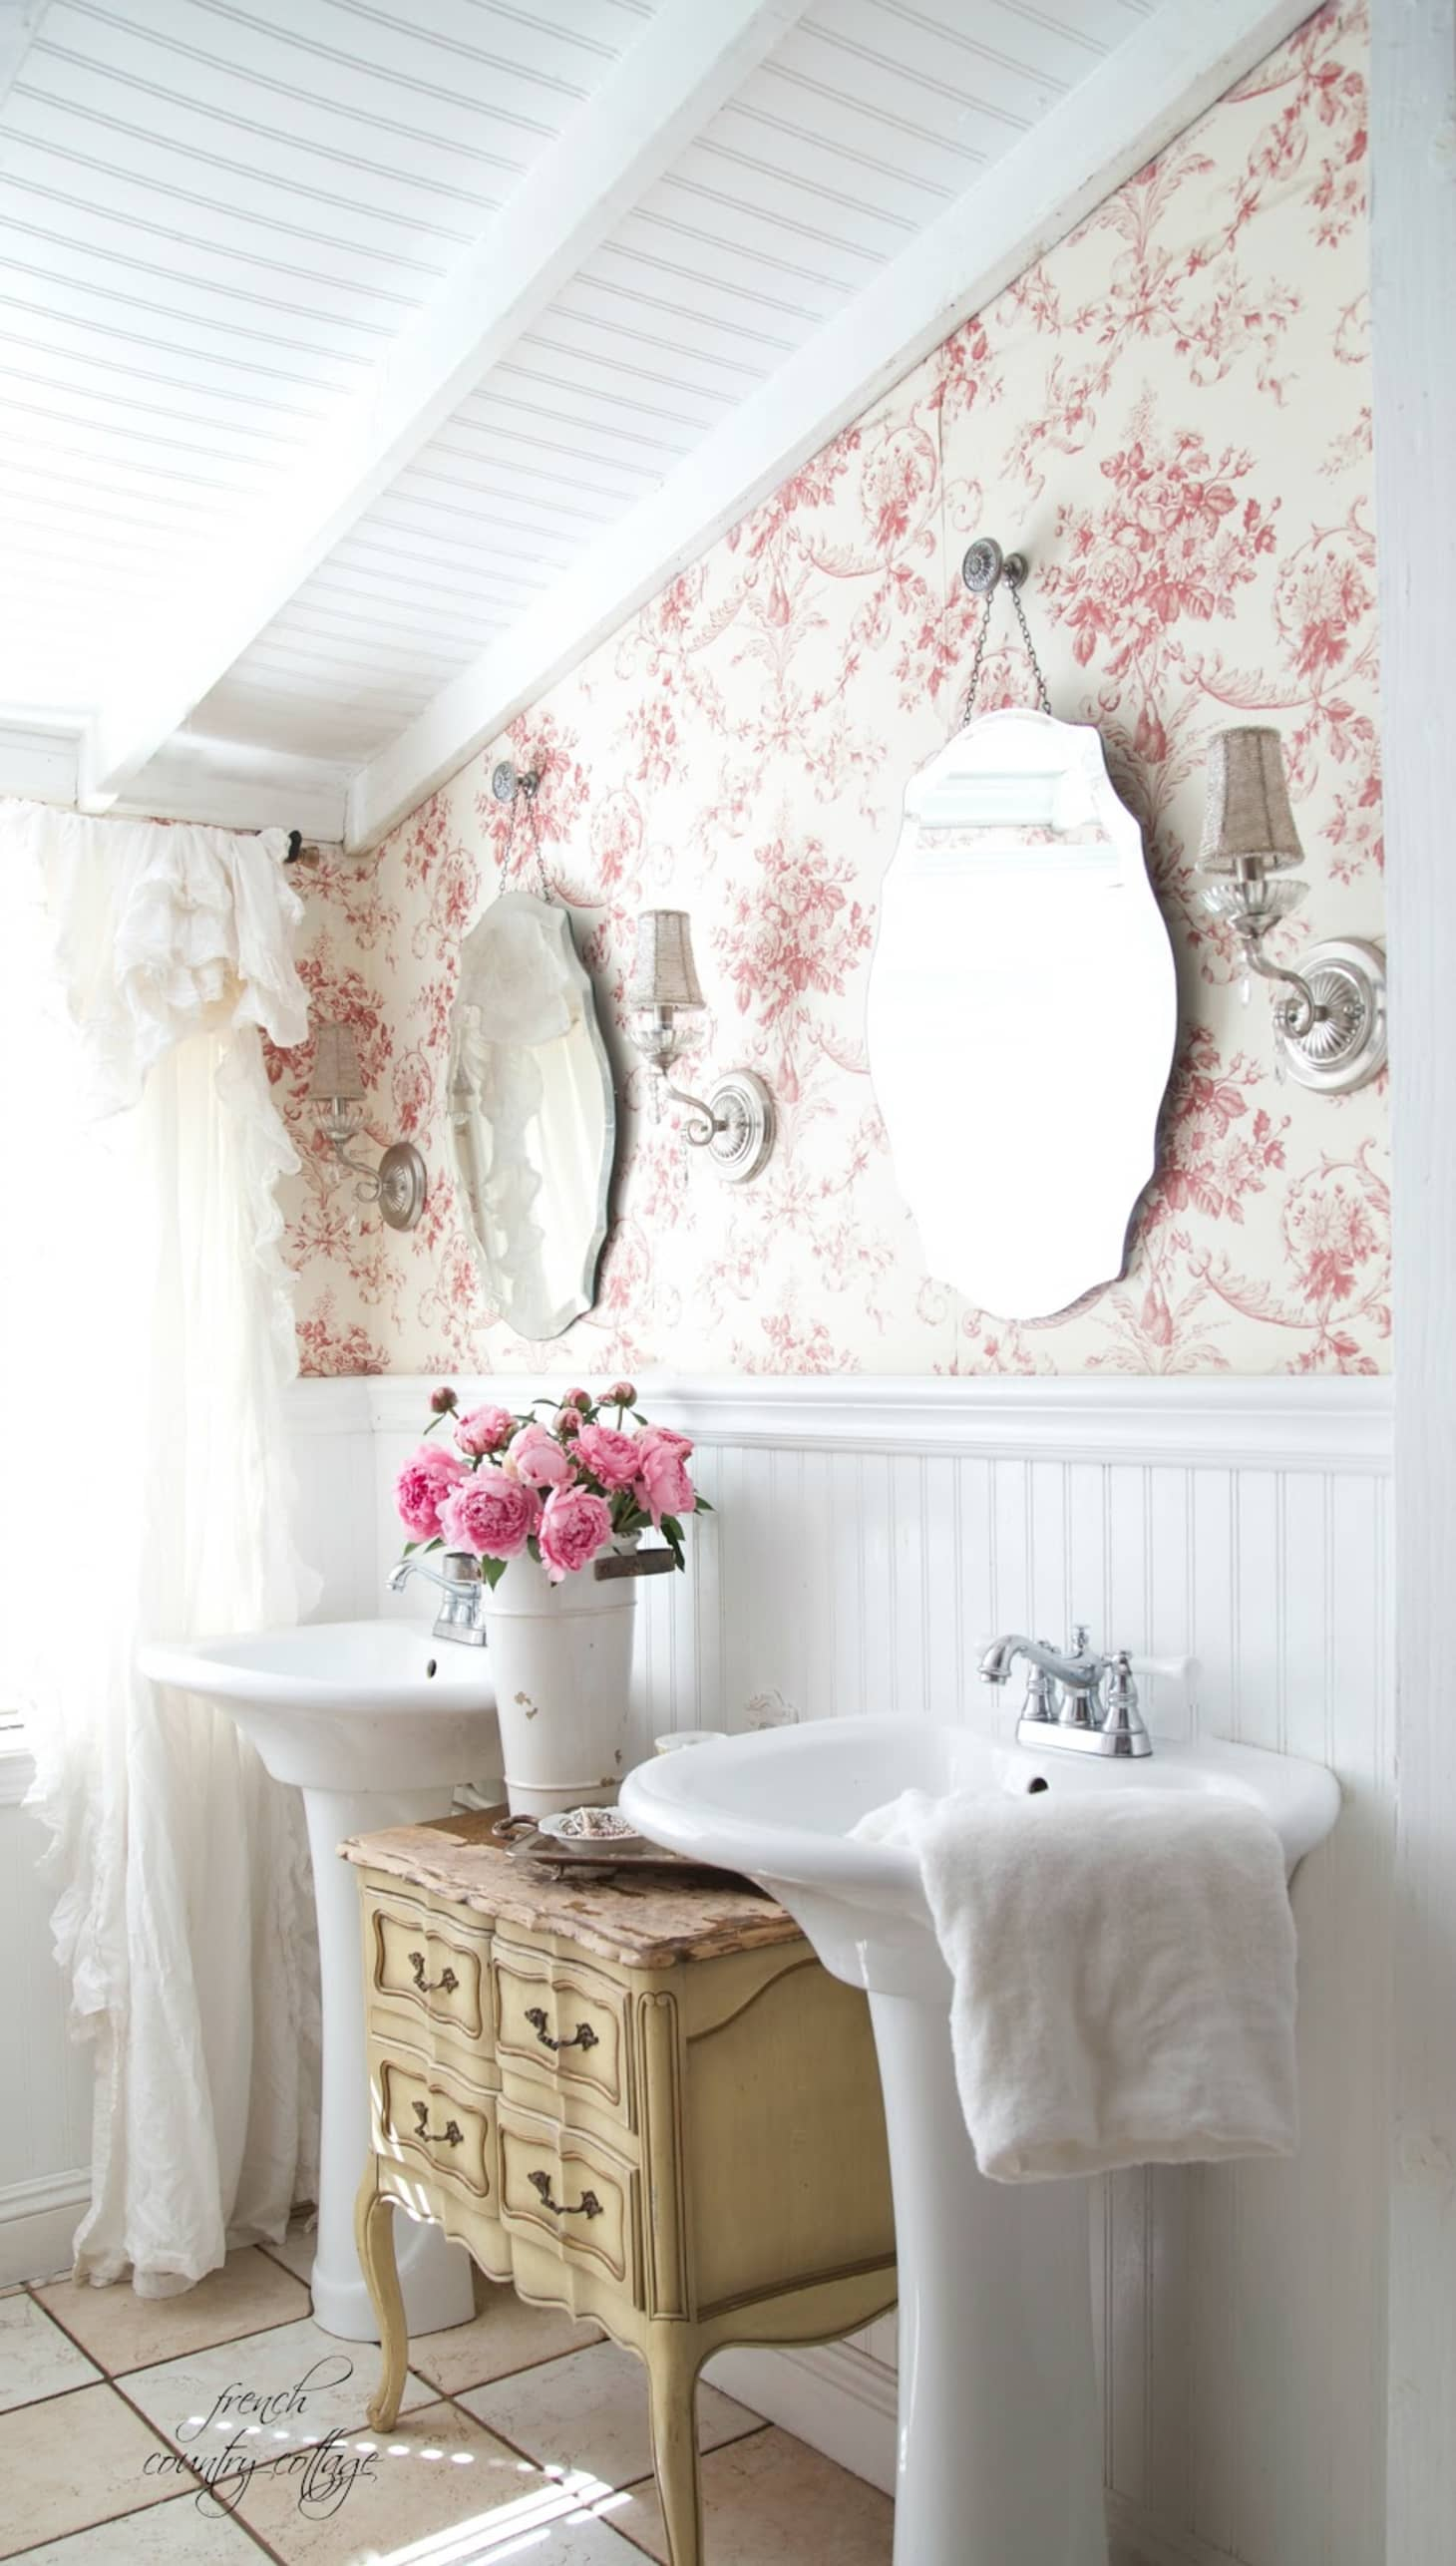 10 Rooms Featuring Beadboard Paneling: Decorating Ideas: 10 Bathrooms With Beadboard Wainscoting